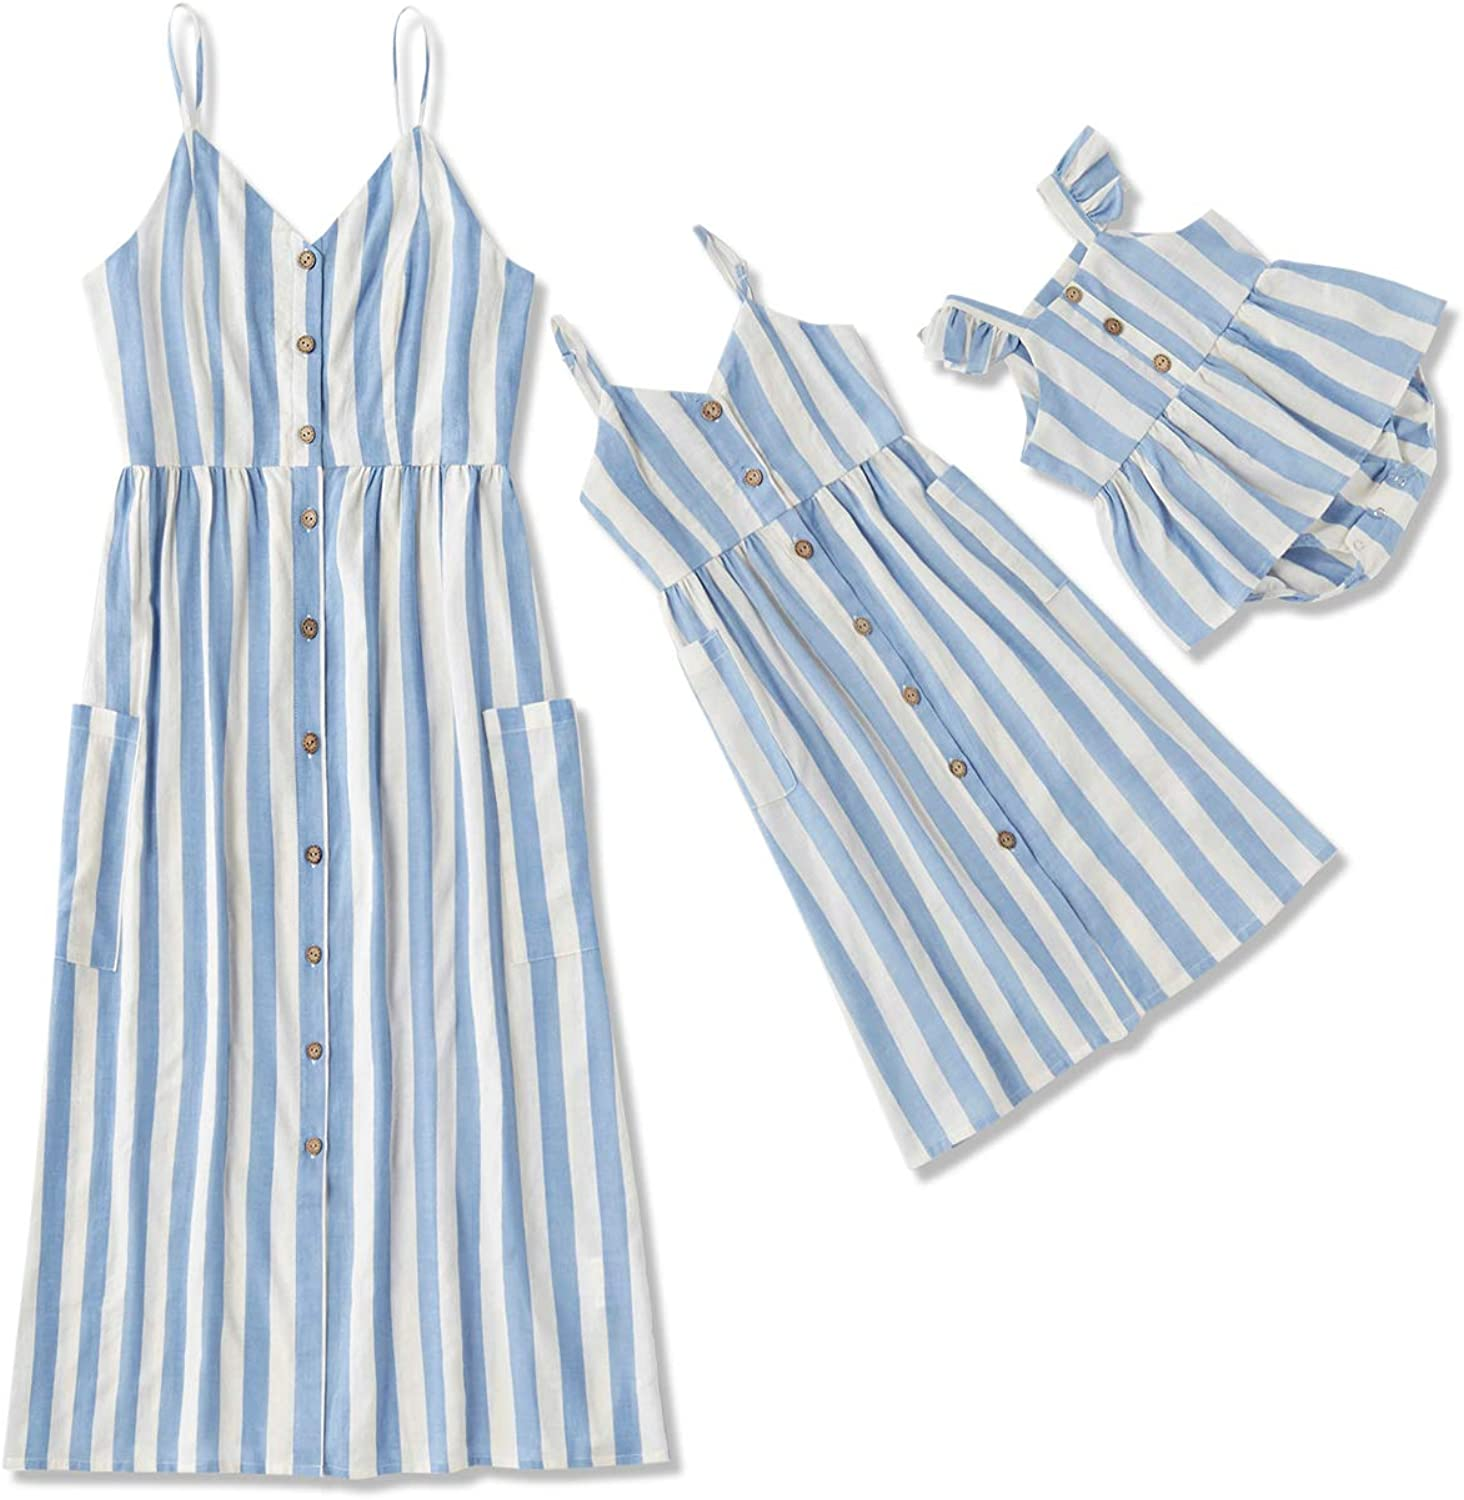 IFFEI Mommy and Me Matching Dress Spaghetti Strap Striped V Neck Button Down Dress with Pockets for Mother and Daughter